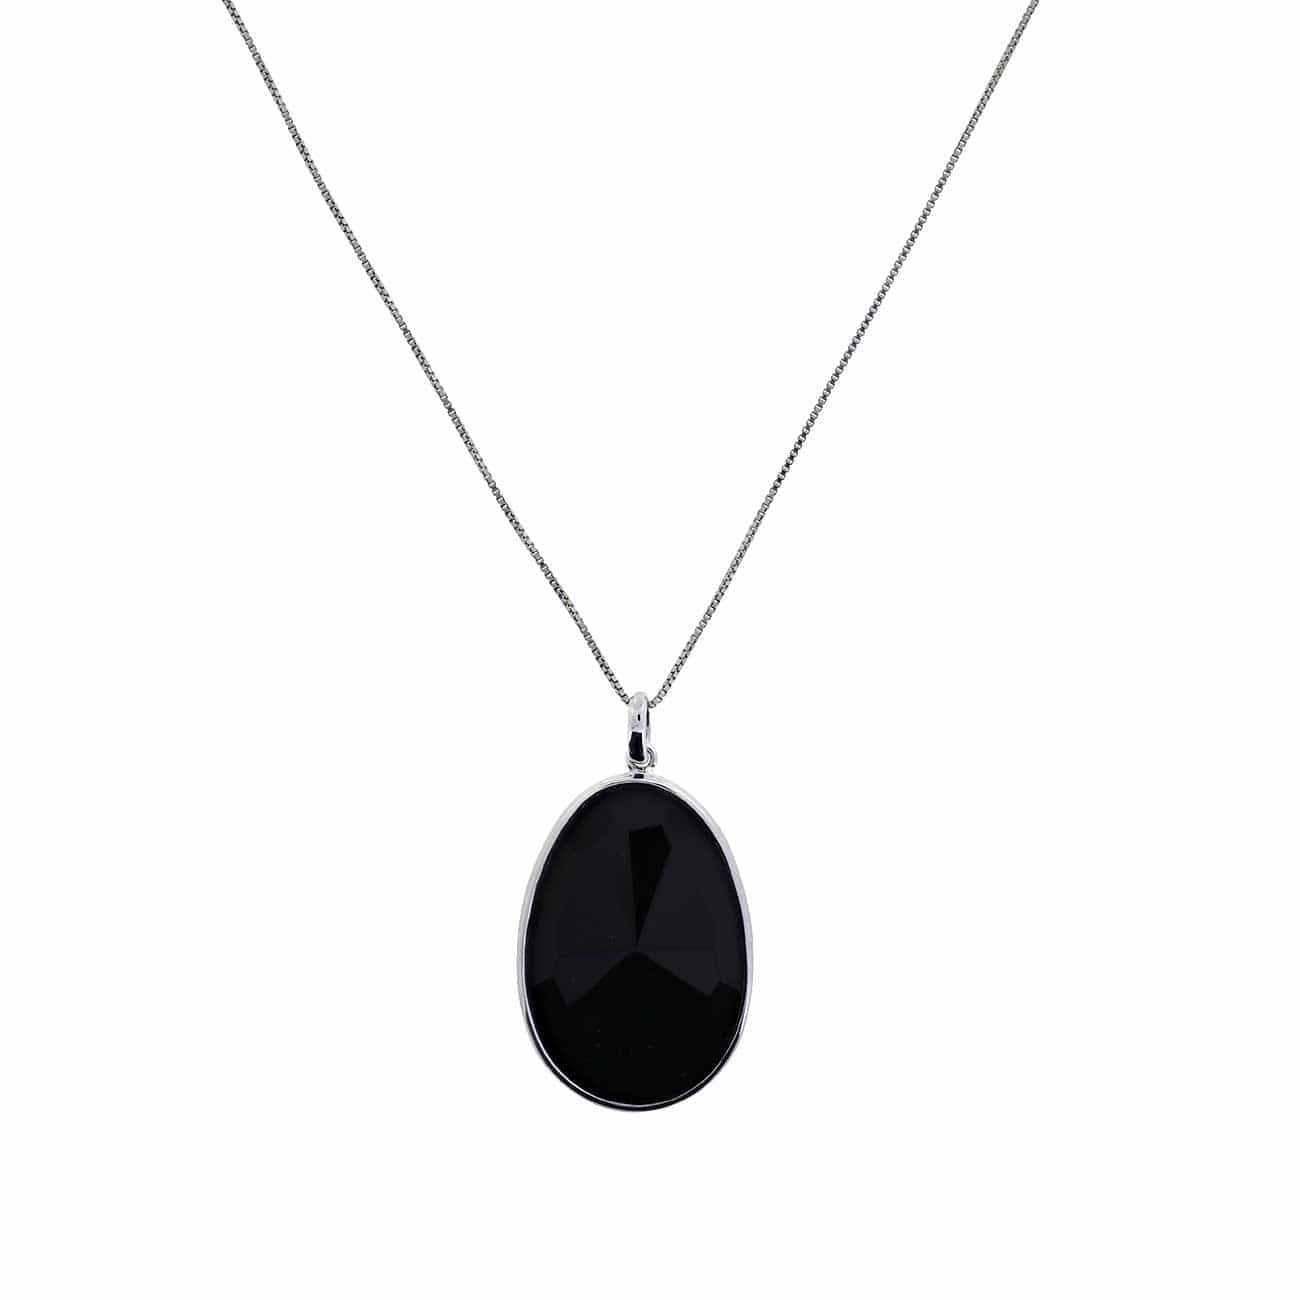 "16-18"" Box Chain Black Agate & Silver Pendant"